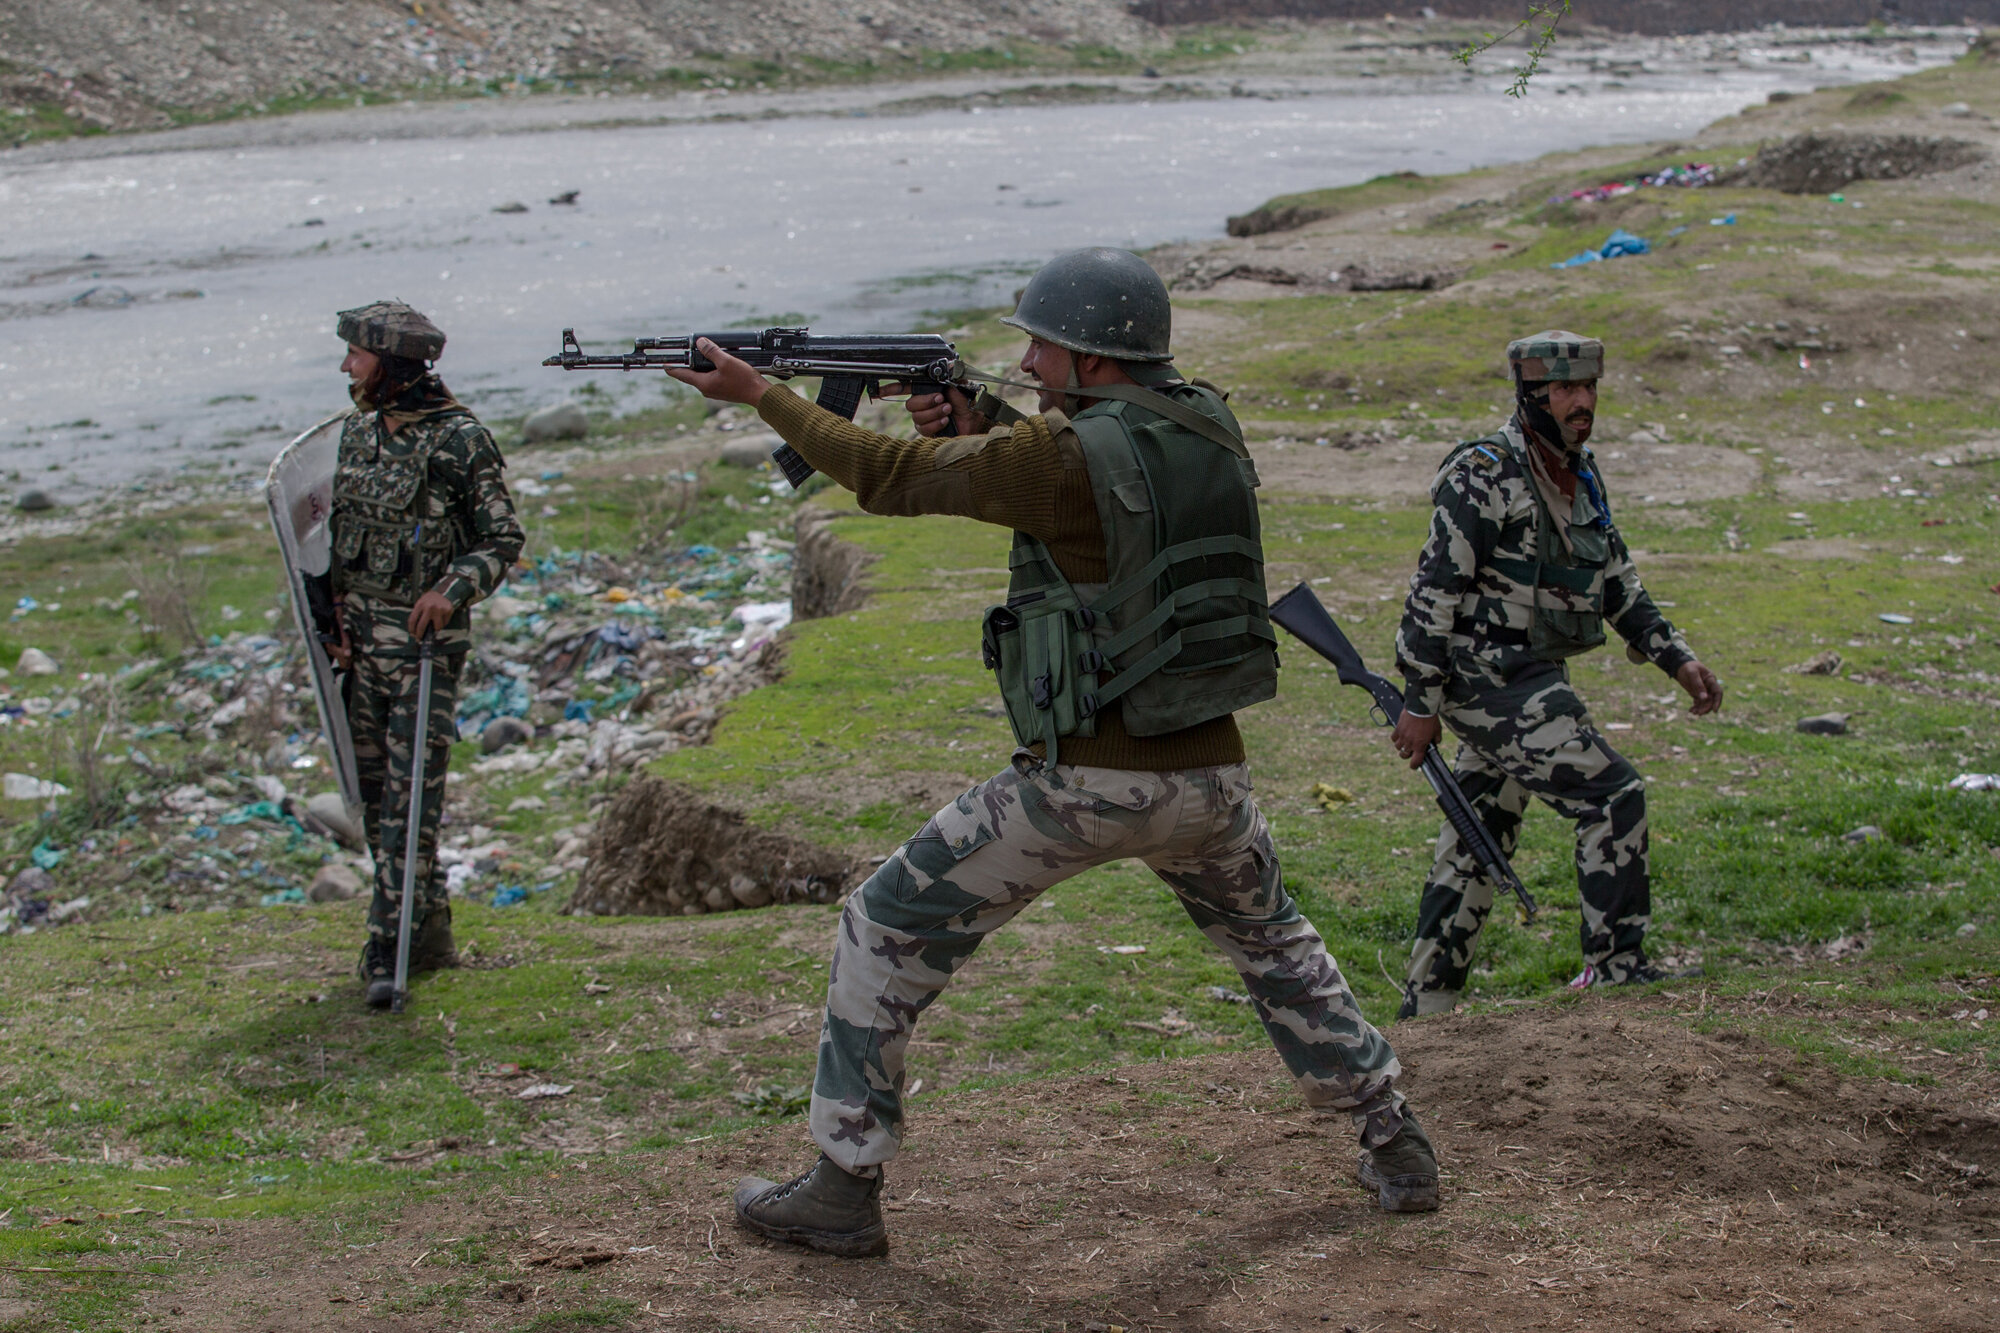 Indian paramilitary soldiers fires live ammunition at Kashmiri protester near the site of gun battle in Chadoora town, about 25 kilometers (15 miles) south of Srinagar, Indian controlled Kashmir, March 28, 2017. (AP Photo/Dar Yasin)